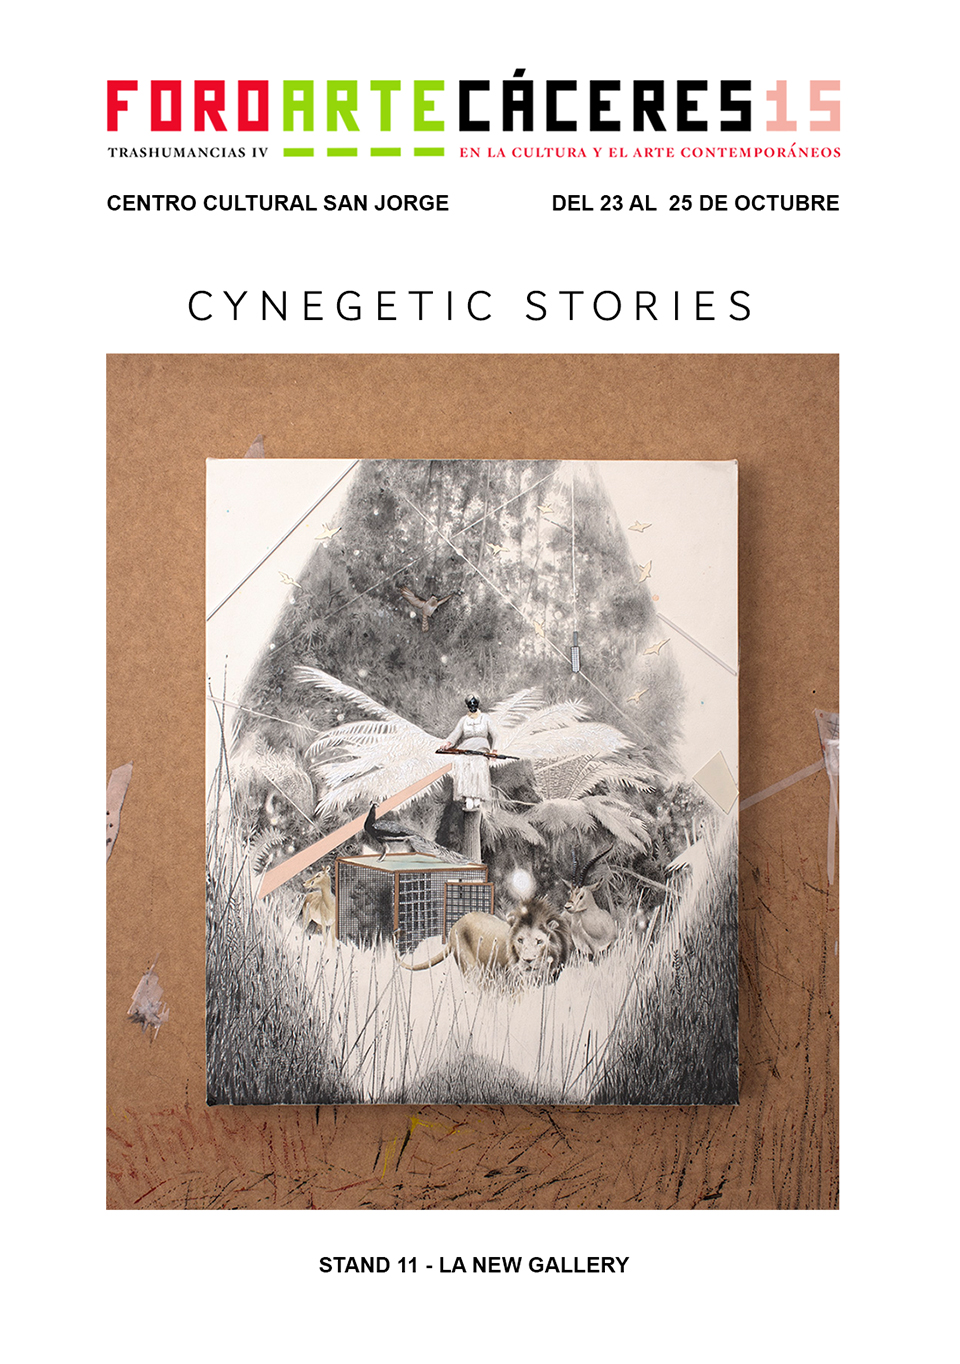 Cynegetic stories en Foro Arte Cáceres 15